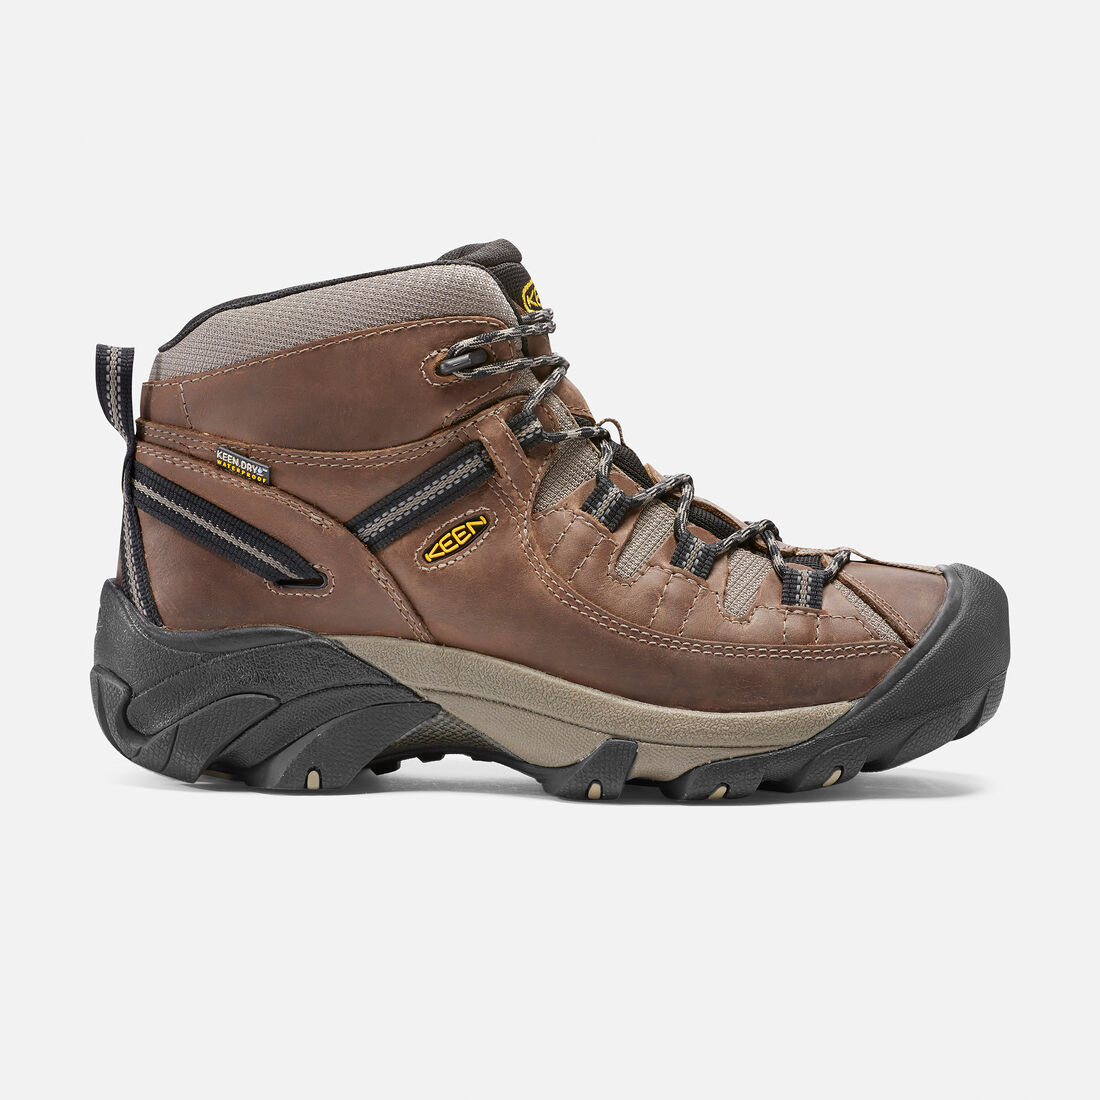 MEN'S TARGHEE II WATERPROOF  MID HIKING BOOTS in Shitake/Brindle - large view.